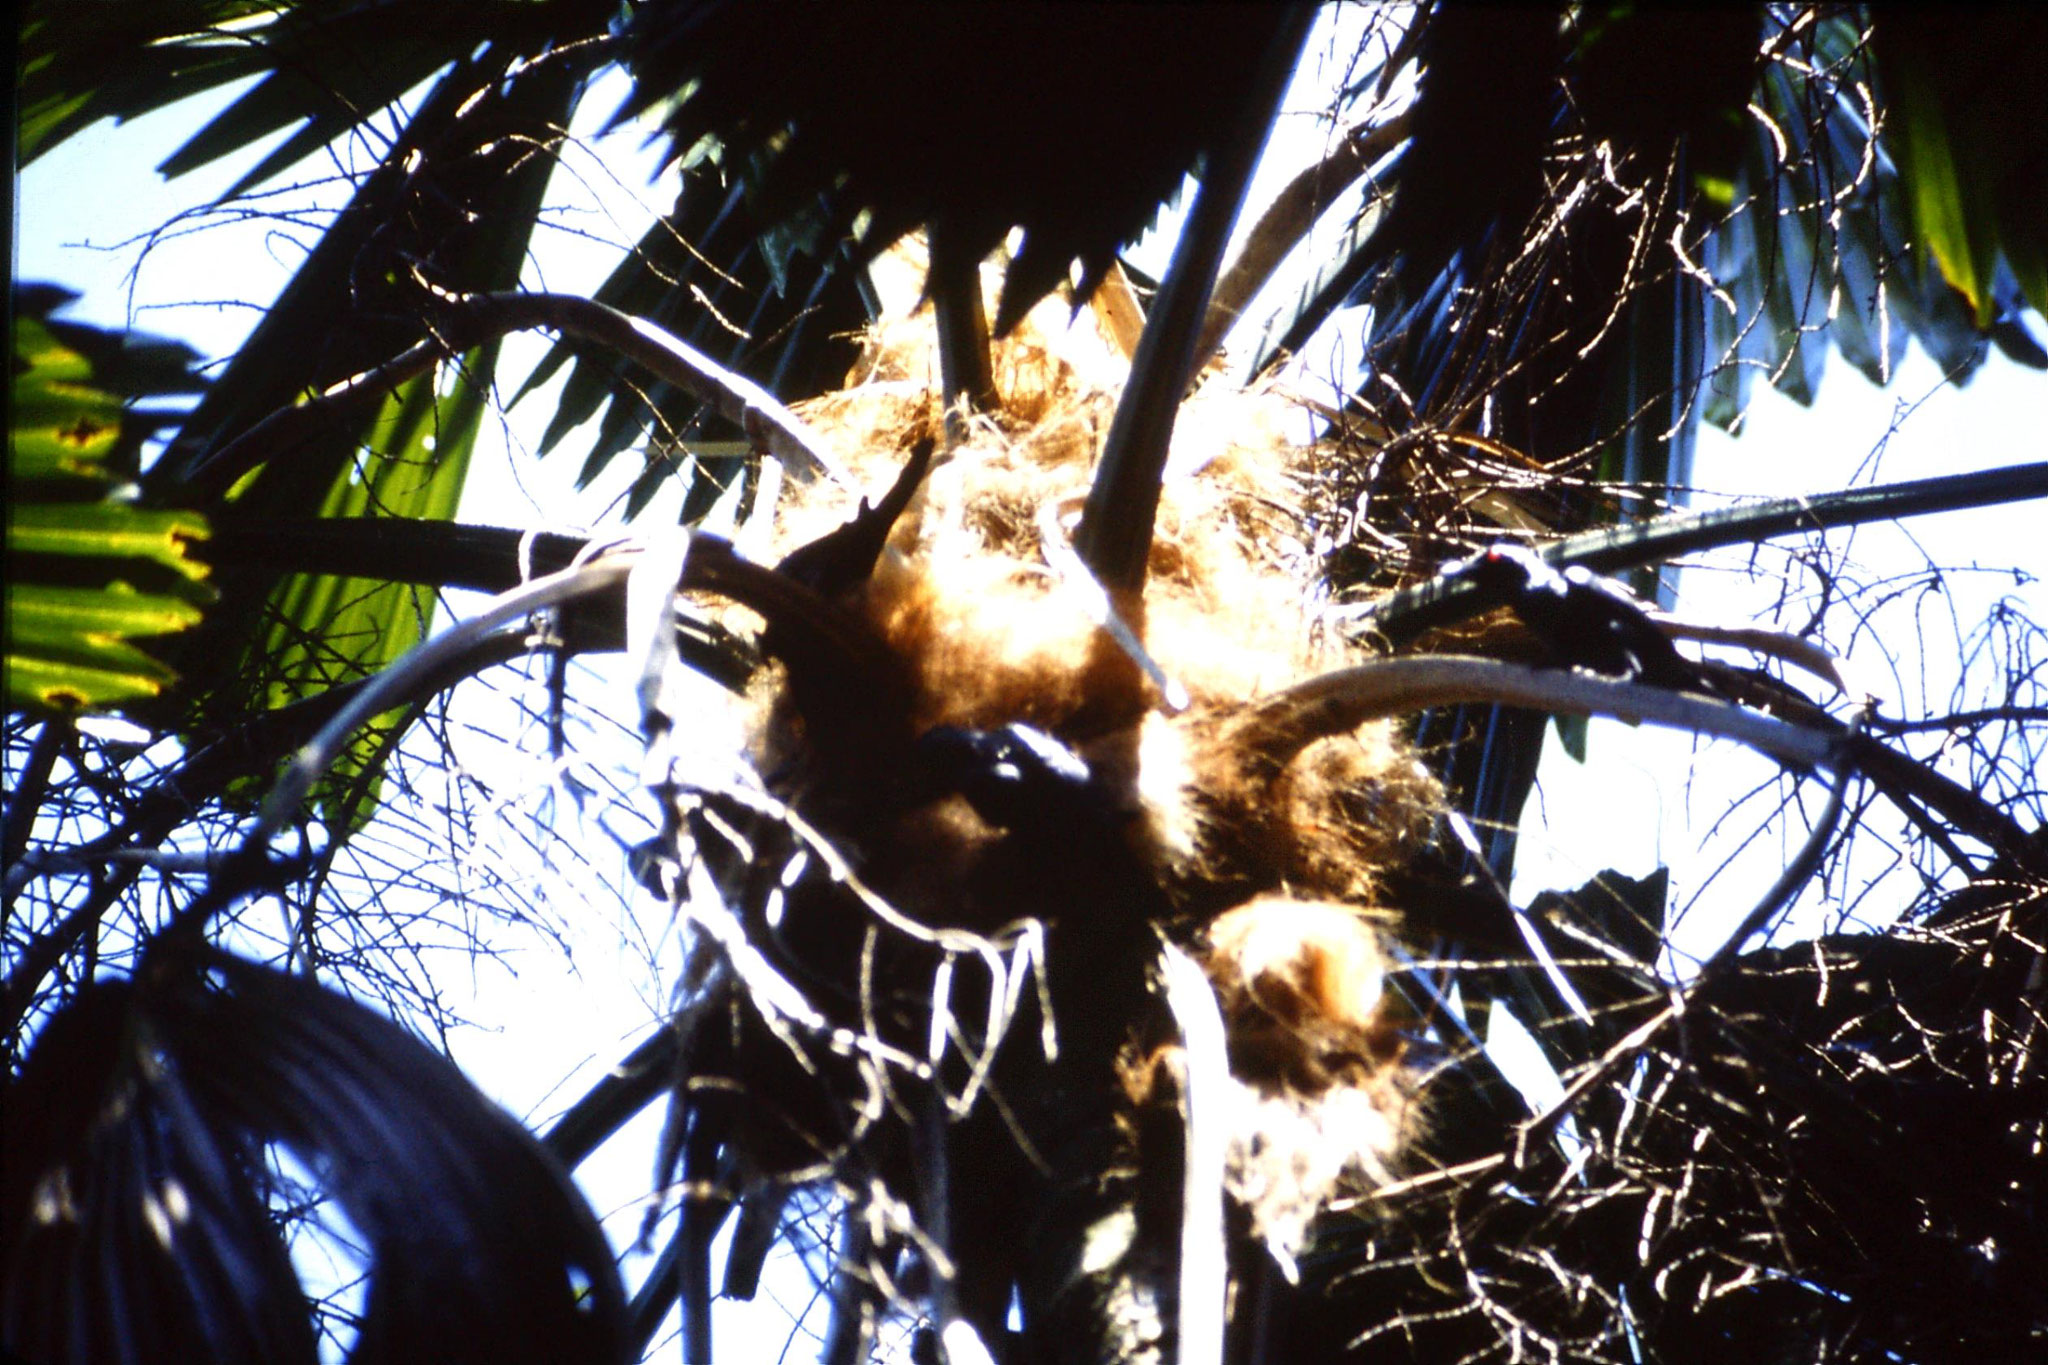 26/10/1990: 18: Cape Tribulation, metallic starlings collecting nest material